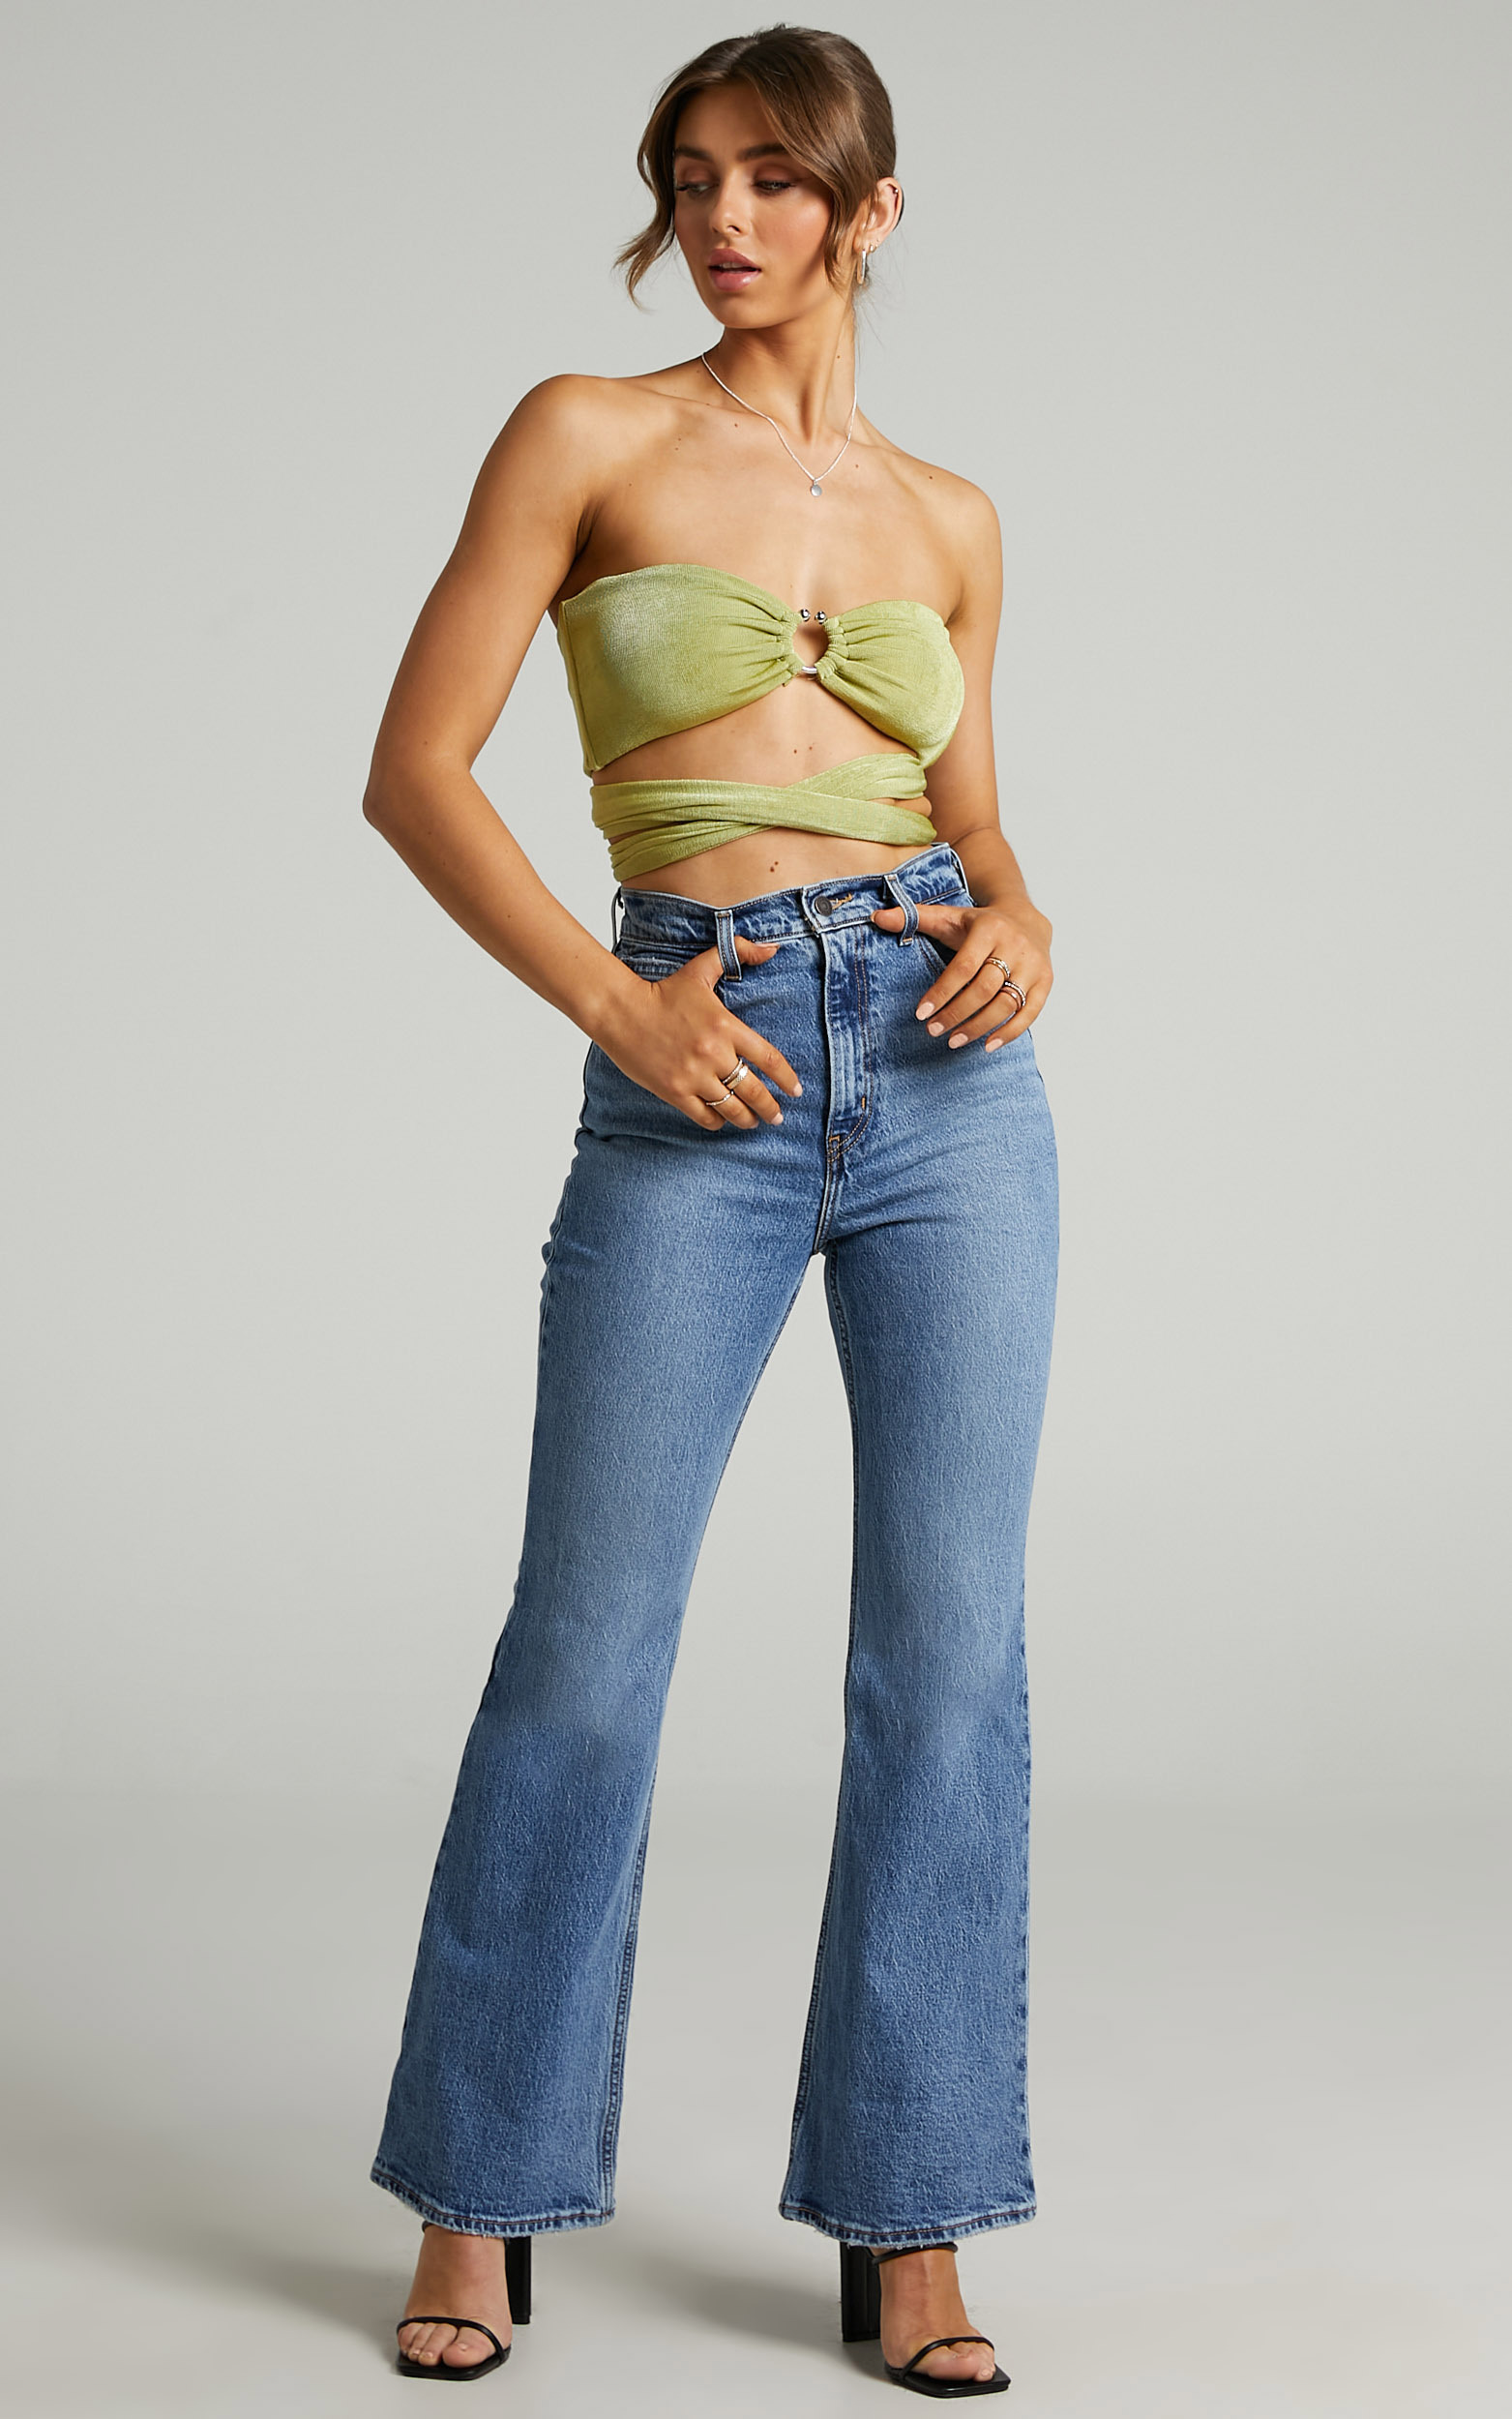 Levis - 70s High Flare Jean in Sonoma Walks - 06, BLU1, hi-res image number null